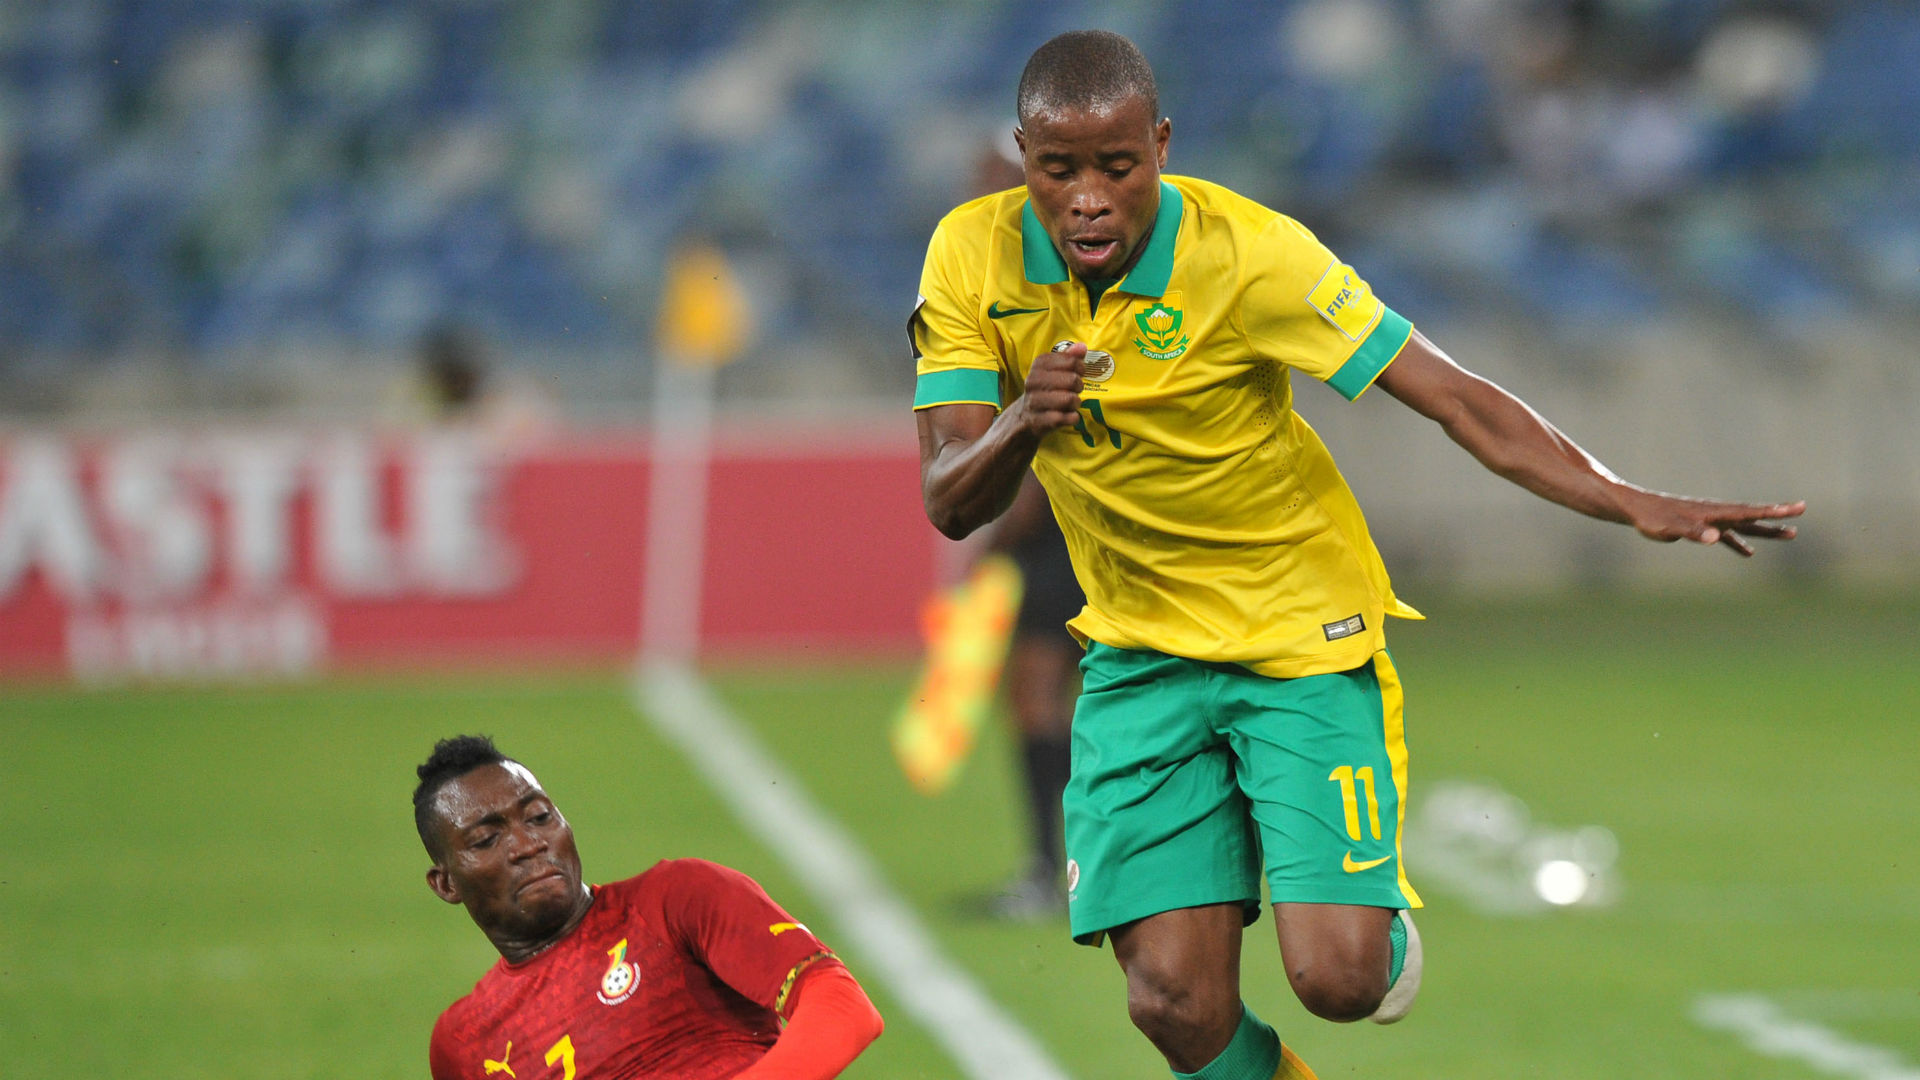 South Africa vs Ghana Live Stream, AFCON Qualifier updates and stream